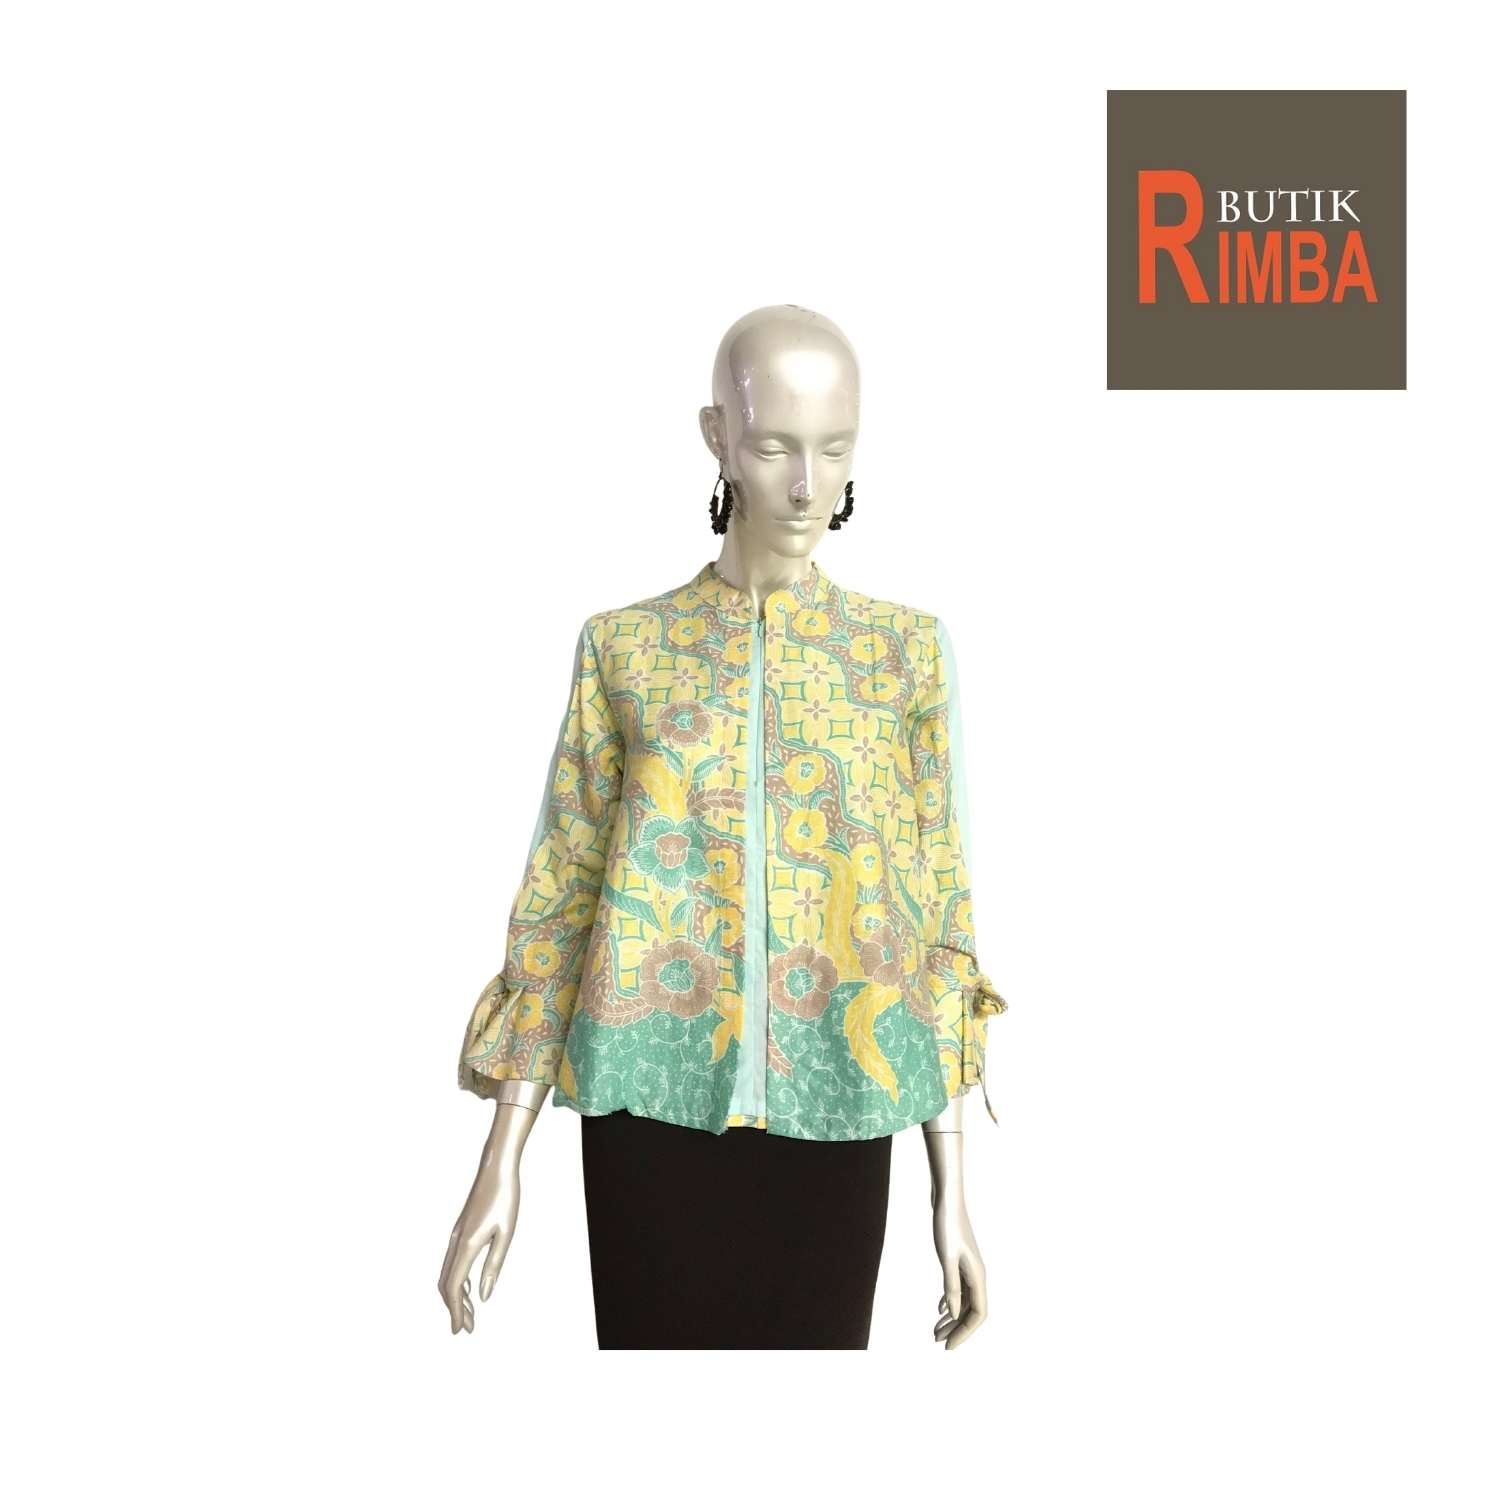 LONG SLEEEVE BATIK TOP WITH VIBRANT COLORS FOR MODERN STYLISH WOMEN